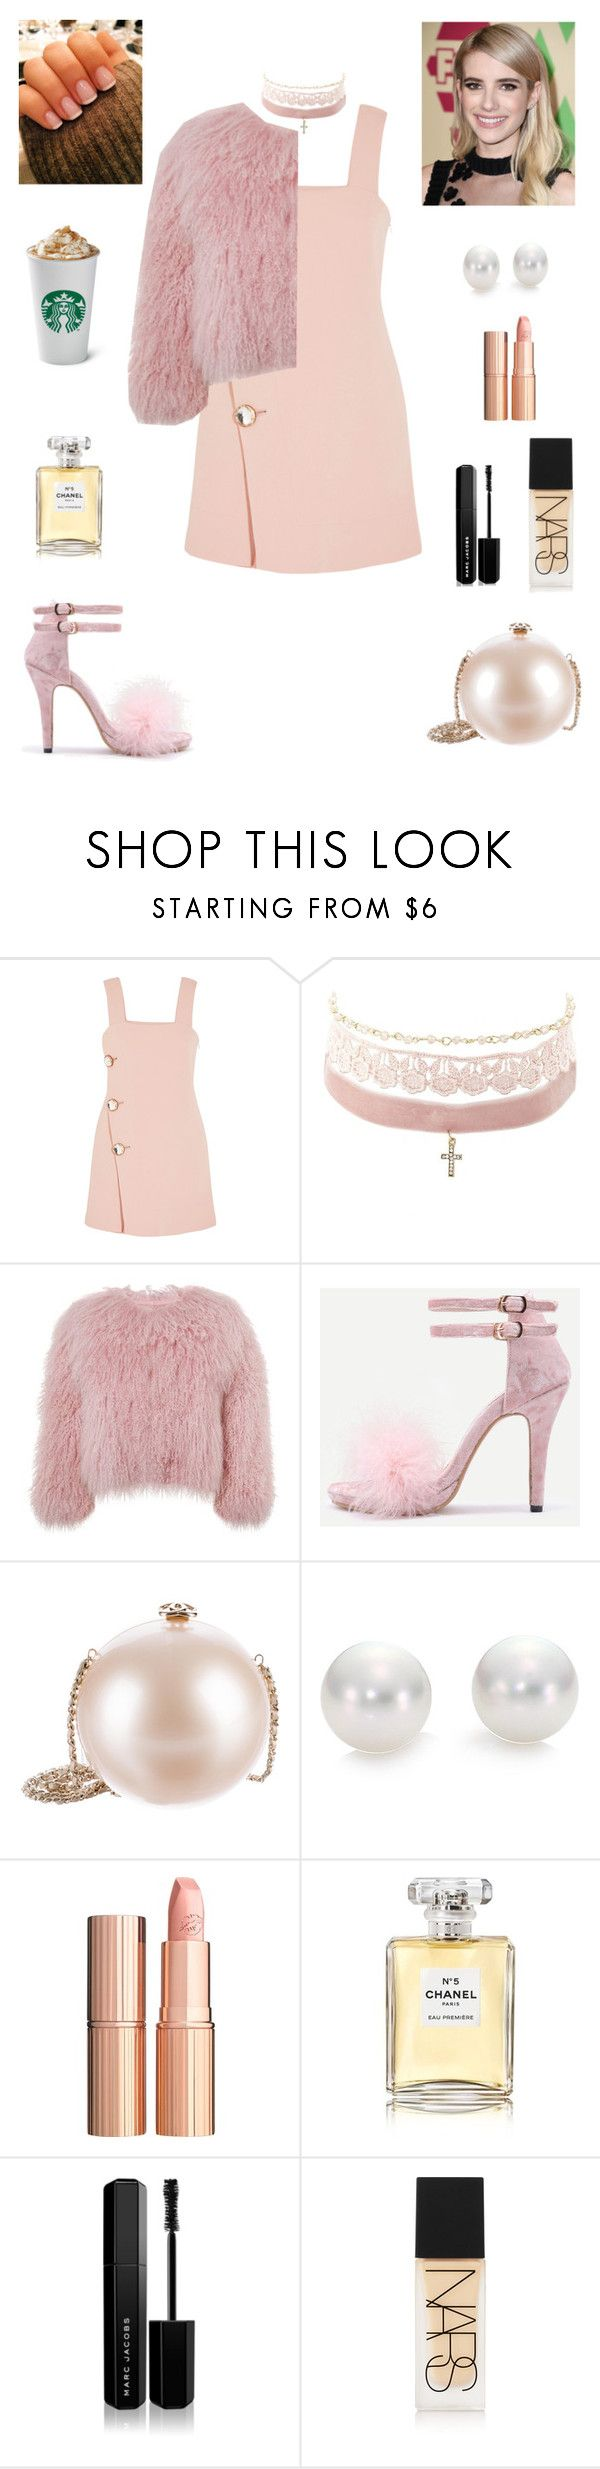 """""""Scream queens #2"""" by leah93-1 ❤ liked on Polyvore featuring Marni, Charlotte Russe, Charlotte Simone, Chanel, Mikimoto, Charlotte Tilbury, Marc Jacobs and NARS Cosmetics"""